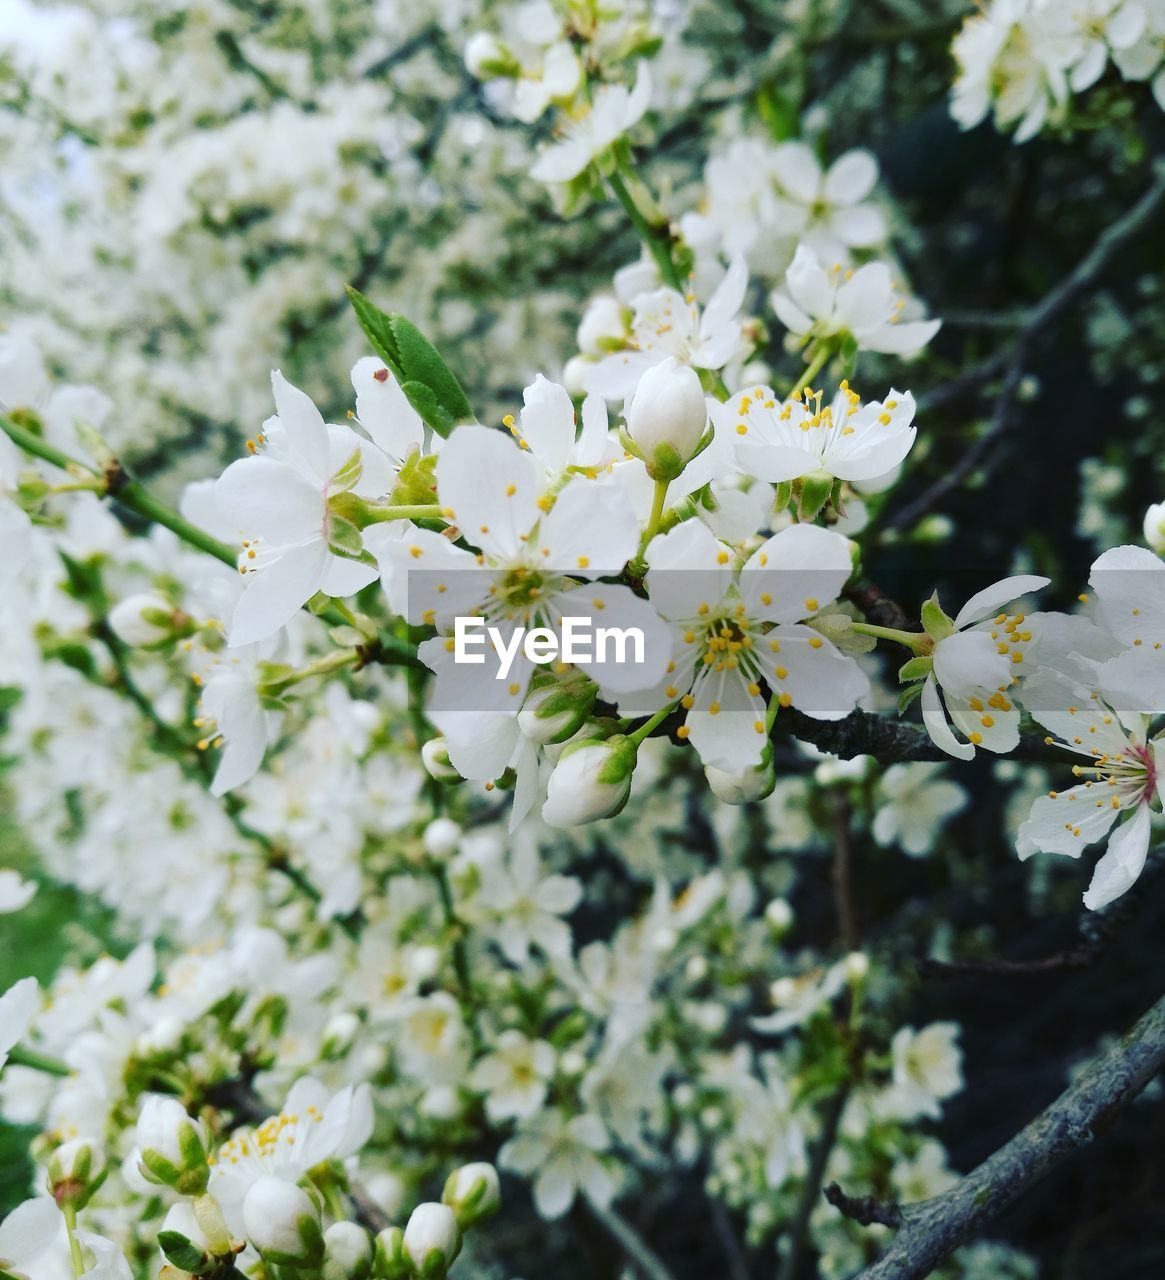 flower, white color, fragility, growth, tree, nature, beauty in nature, blossom, freshness, apple blossom, branch, springtime, apple tree, day, no people, botany, orchard, petal, outdoors, blooming, flower head, close-up